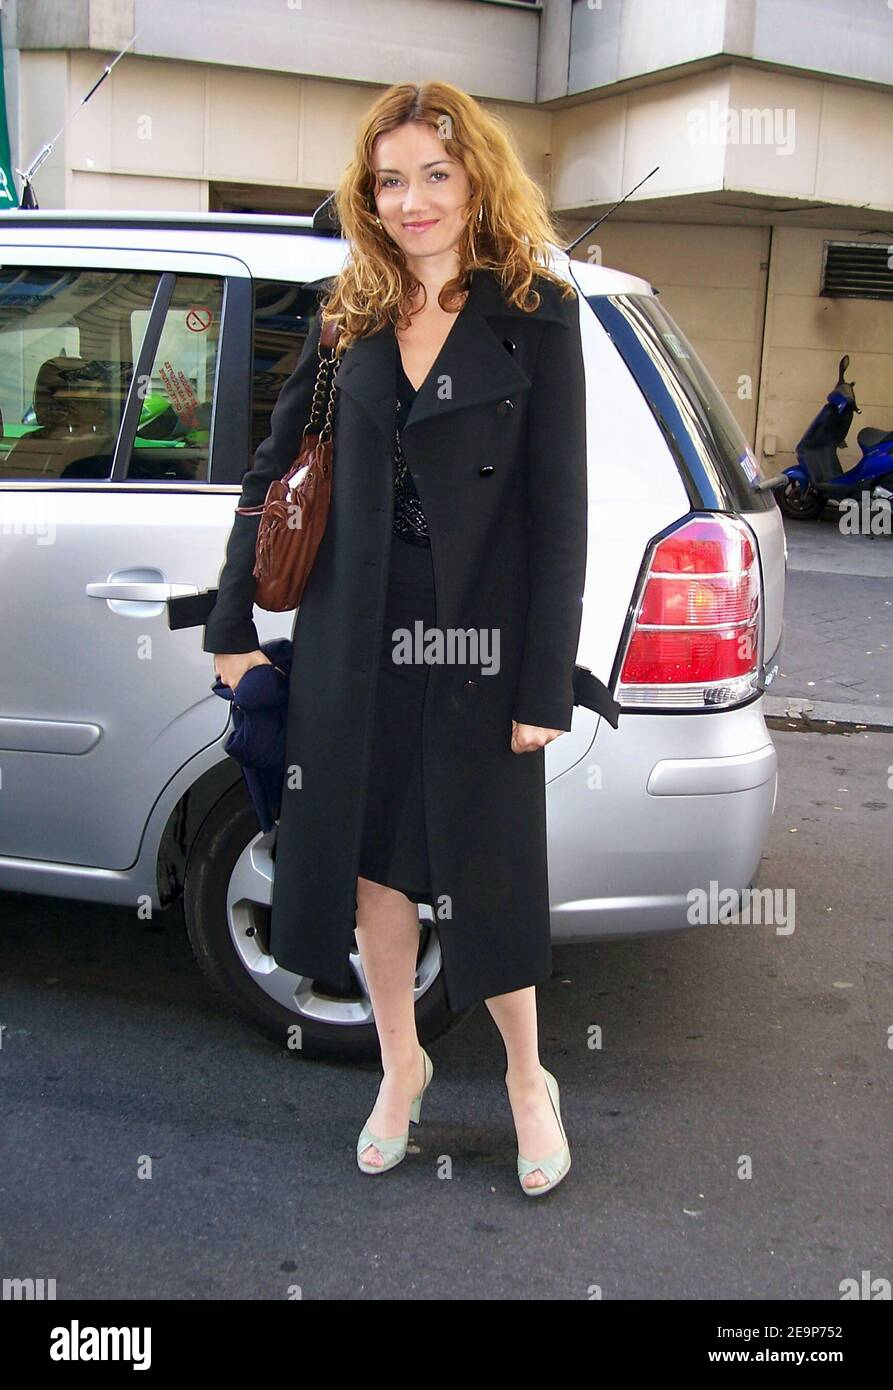 EXCLUSIVE. French actress Marine Delterme poses while leaving 'Fun Radio' radio station in Paris, France on November 10, 2006. Photo by Denis Guignebourg/ABACAPRESS.COM Stock Photo